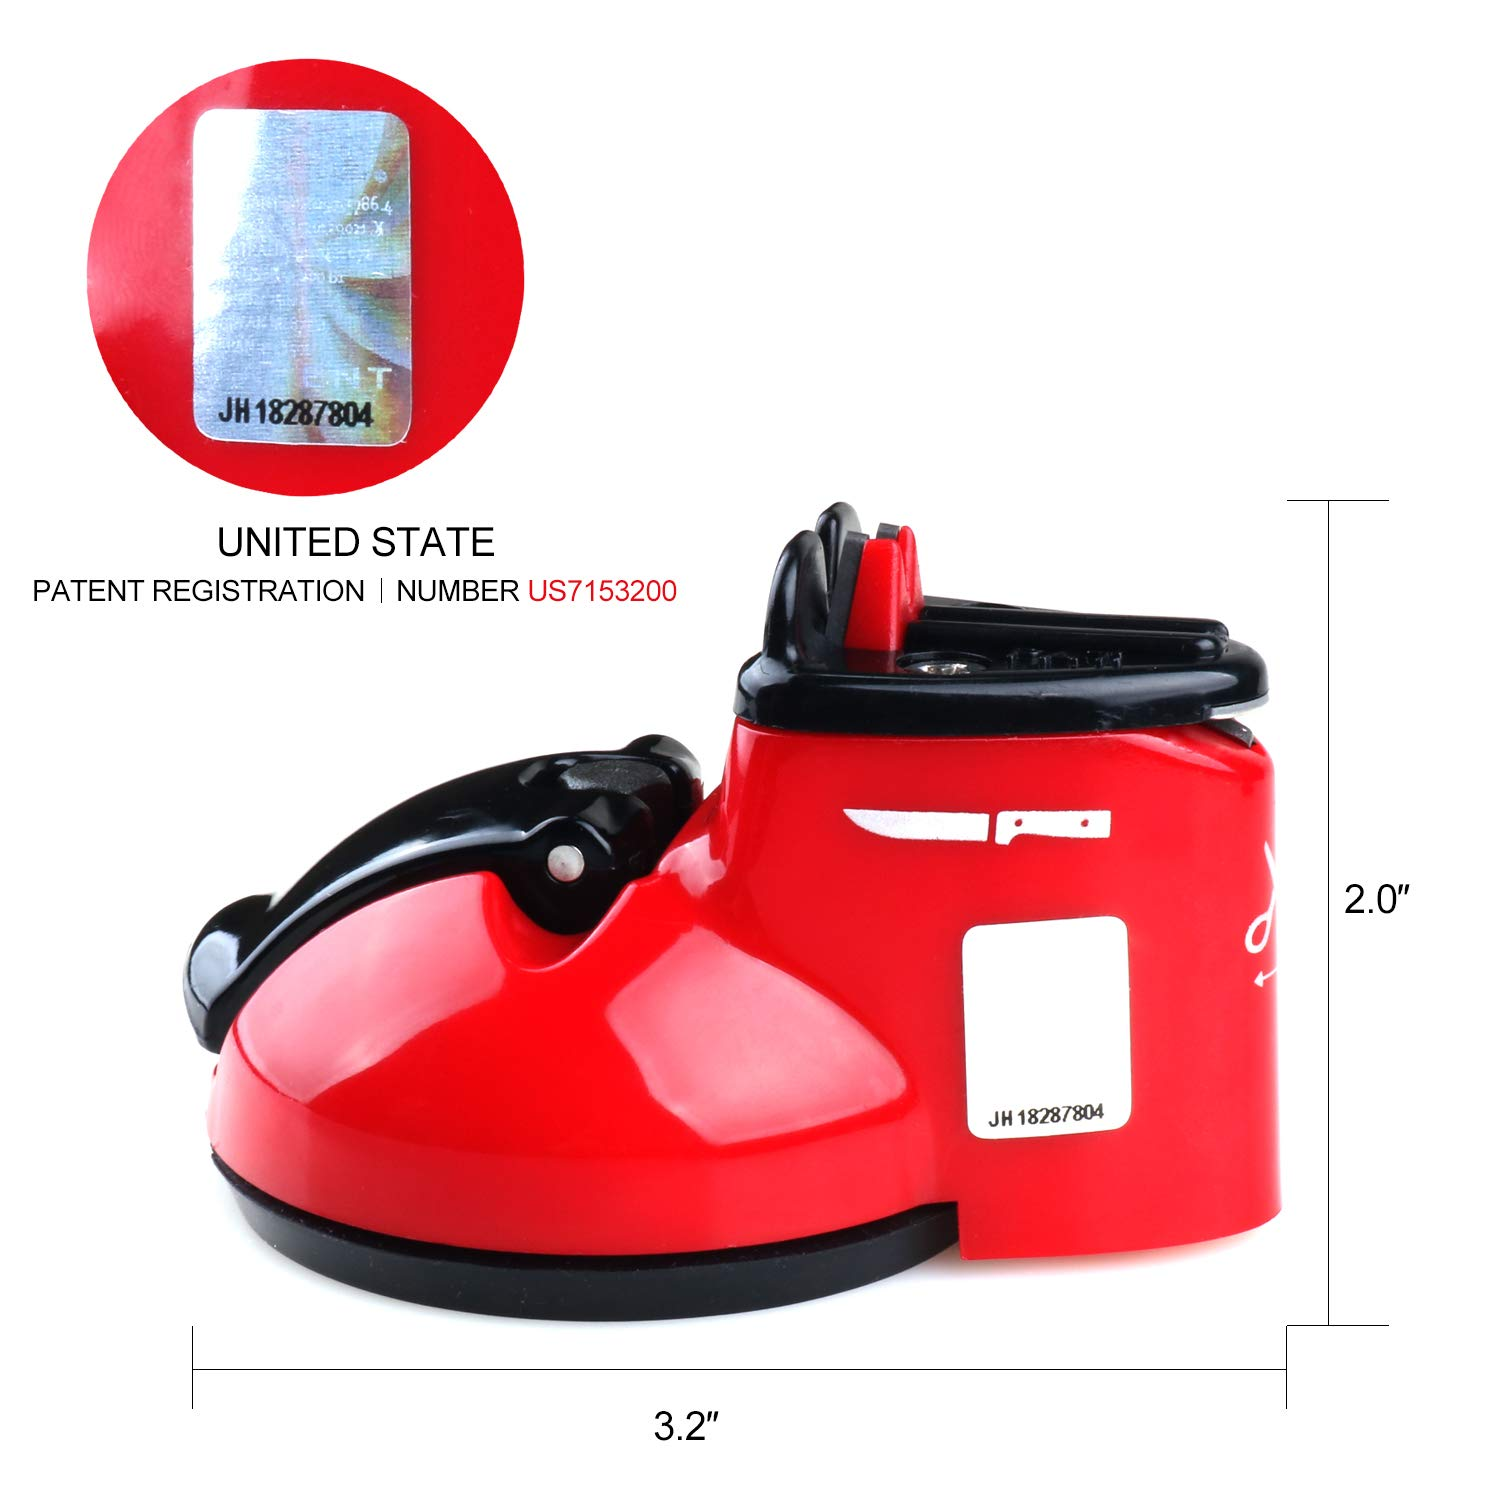 Kitchen Knife Sharpener Scissor Sharpener 2-Stage Knife & Scissor Sharpening Tool Helps Repair Camping & Hiking Precision Perfect,Calibration Easy Safe KitchenRight by KitchenRight (Image #4)